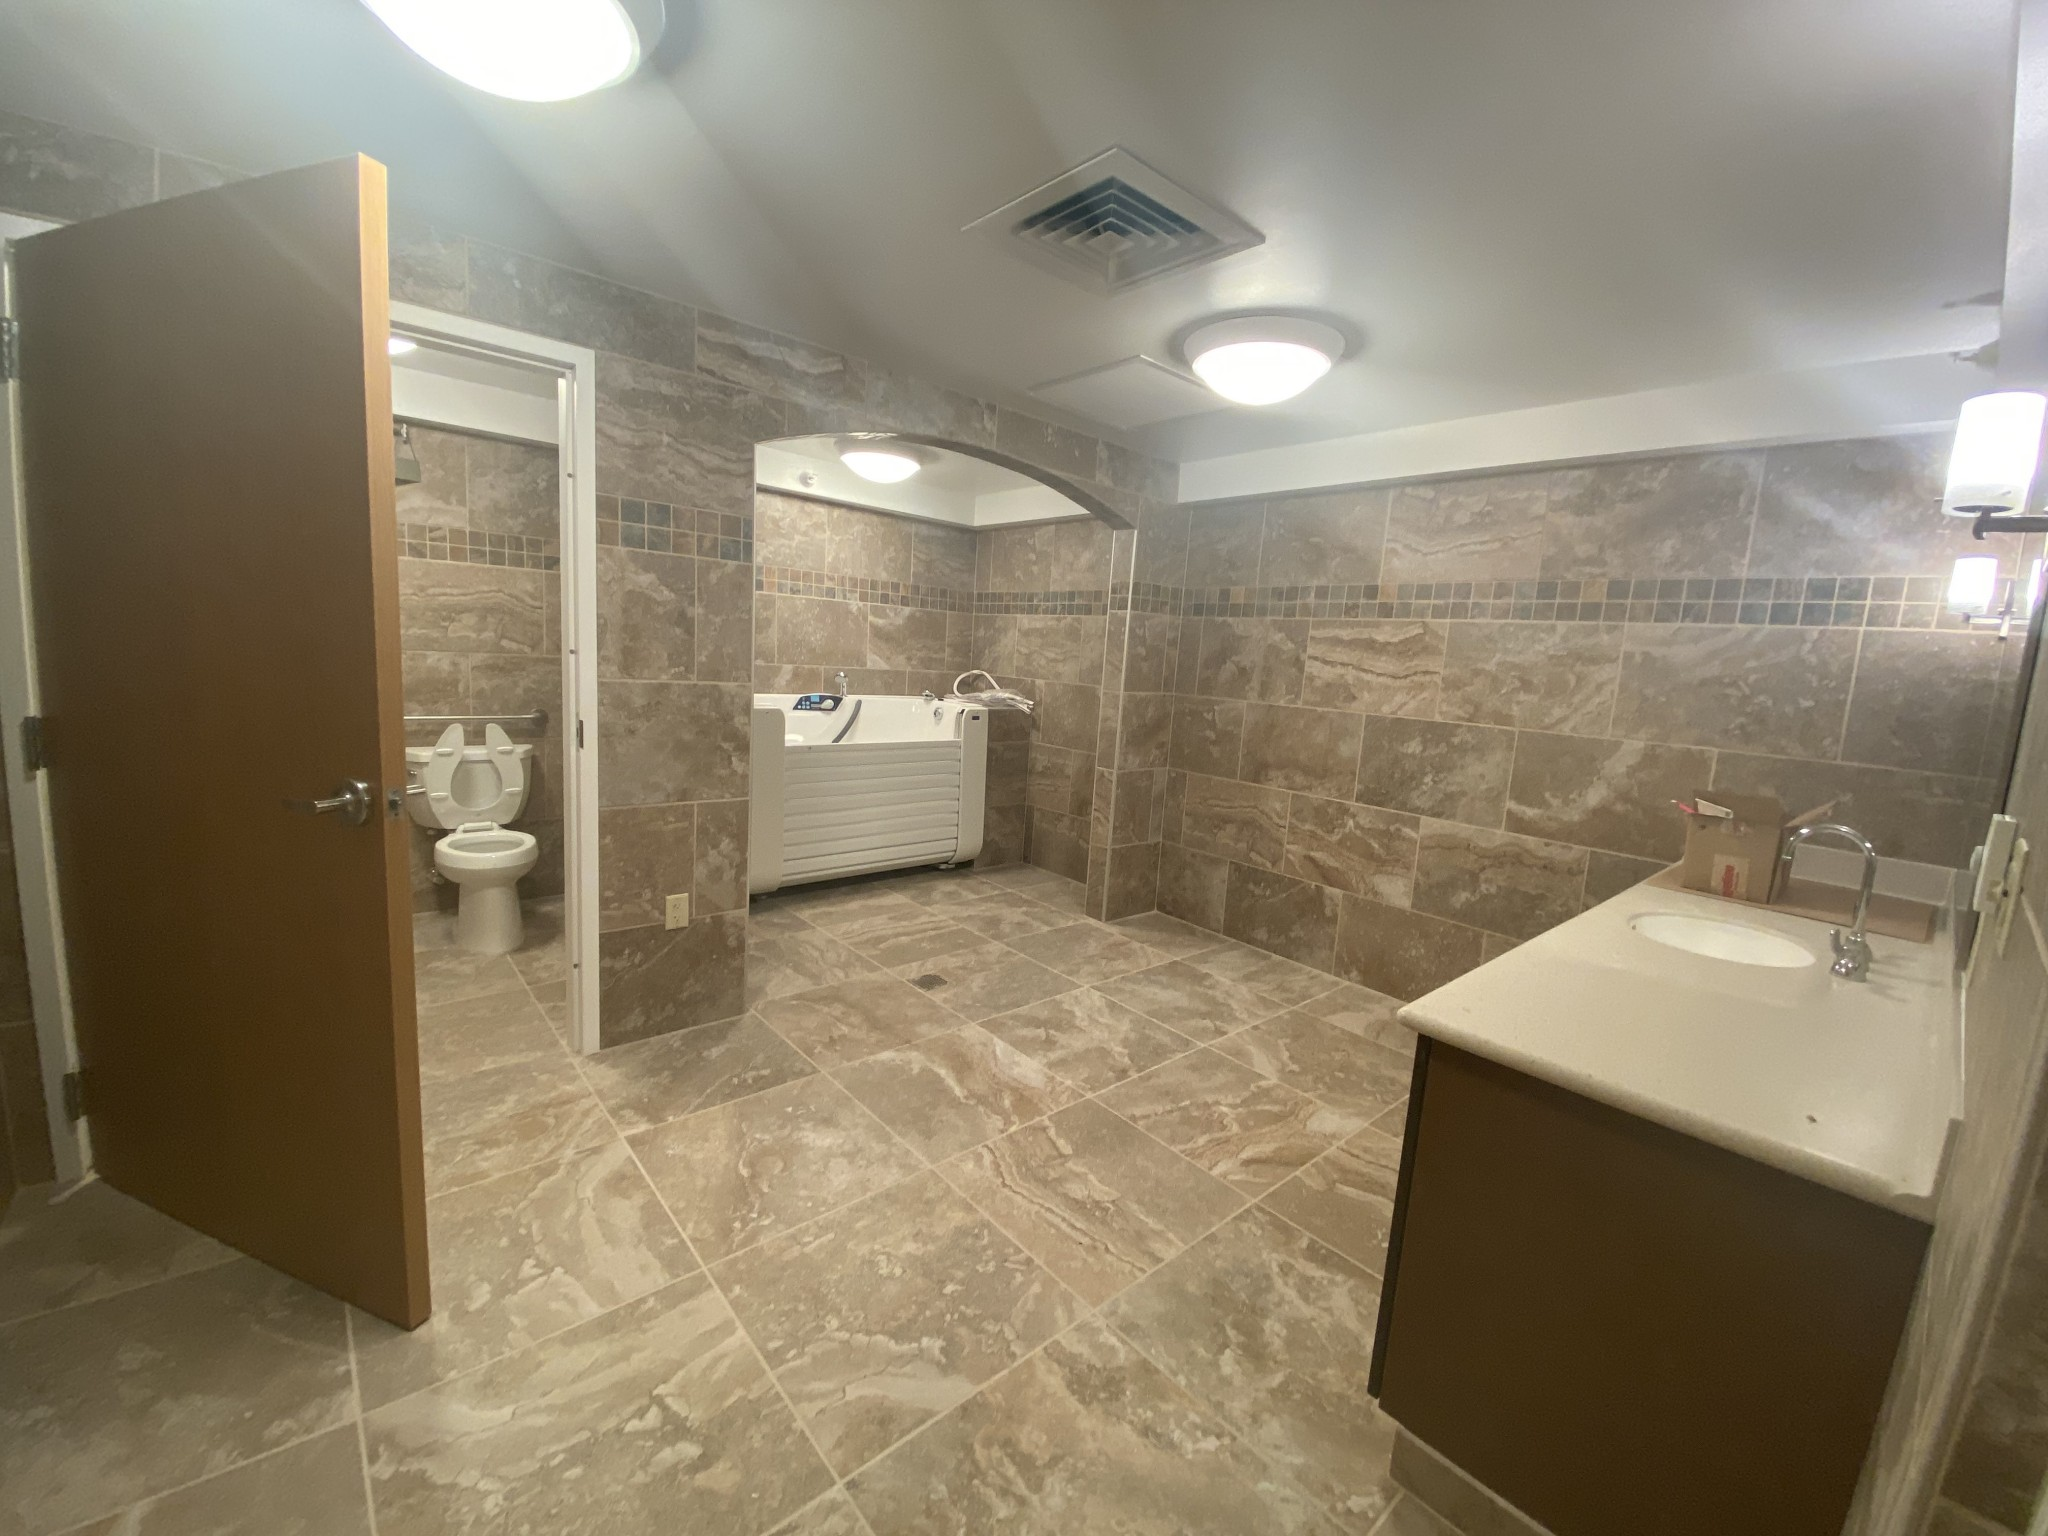 Assisted Living Spa Room at Riverview Healthcare Campus. (Submitted photo)